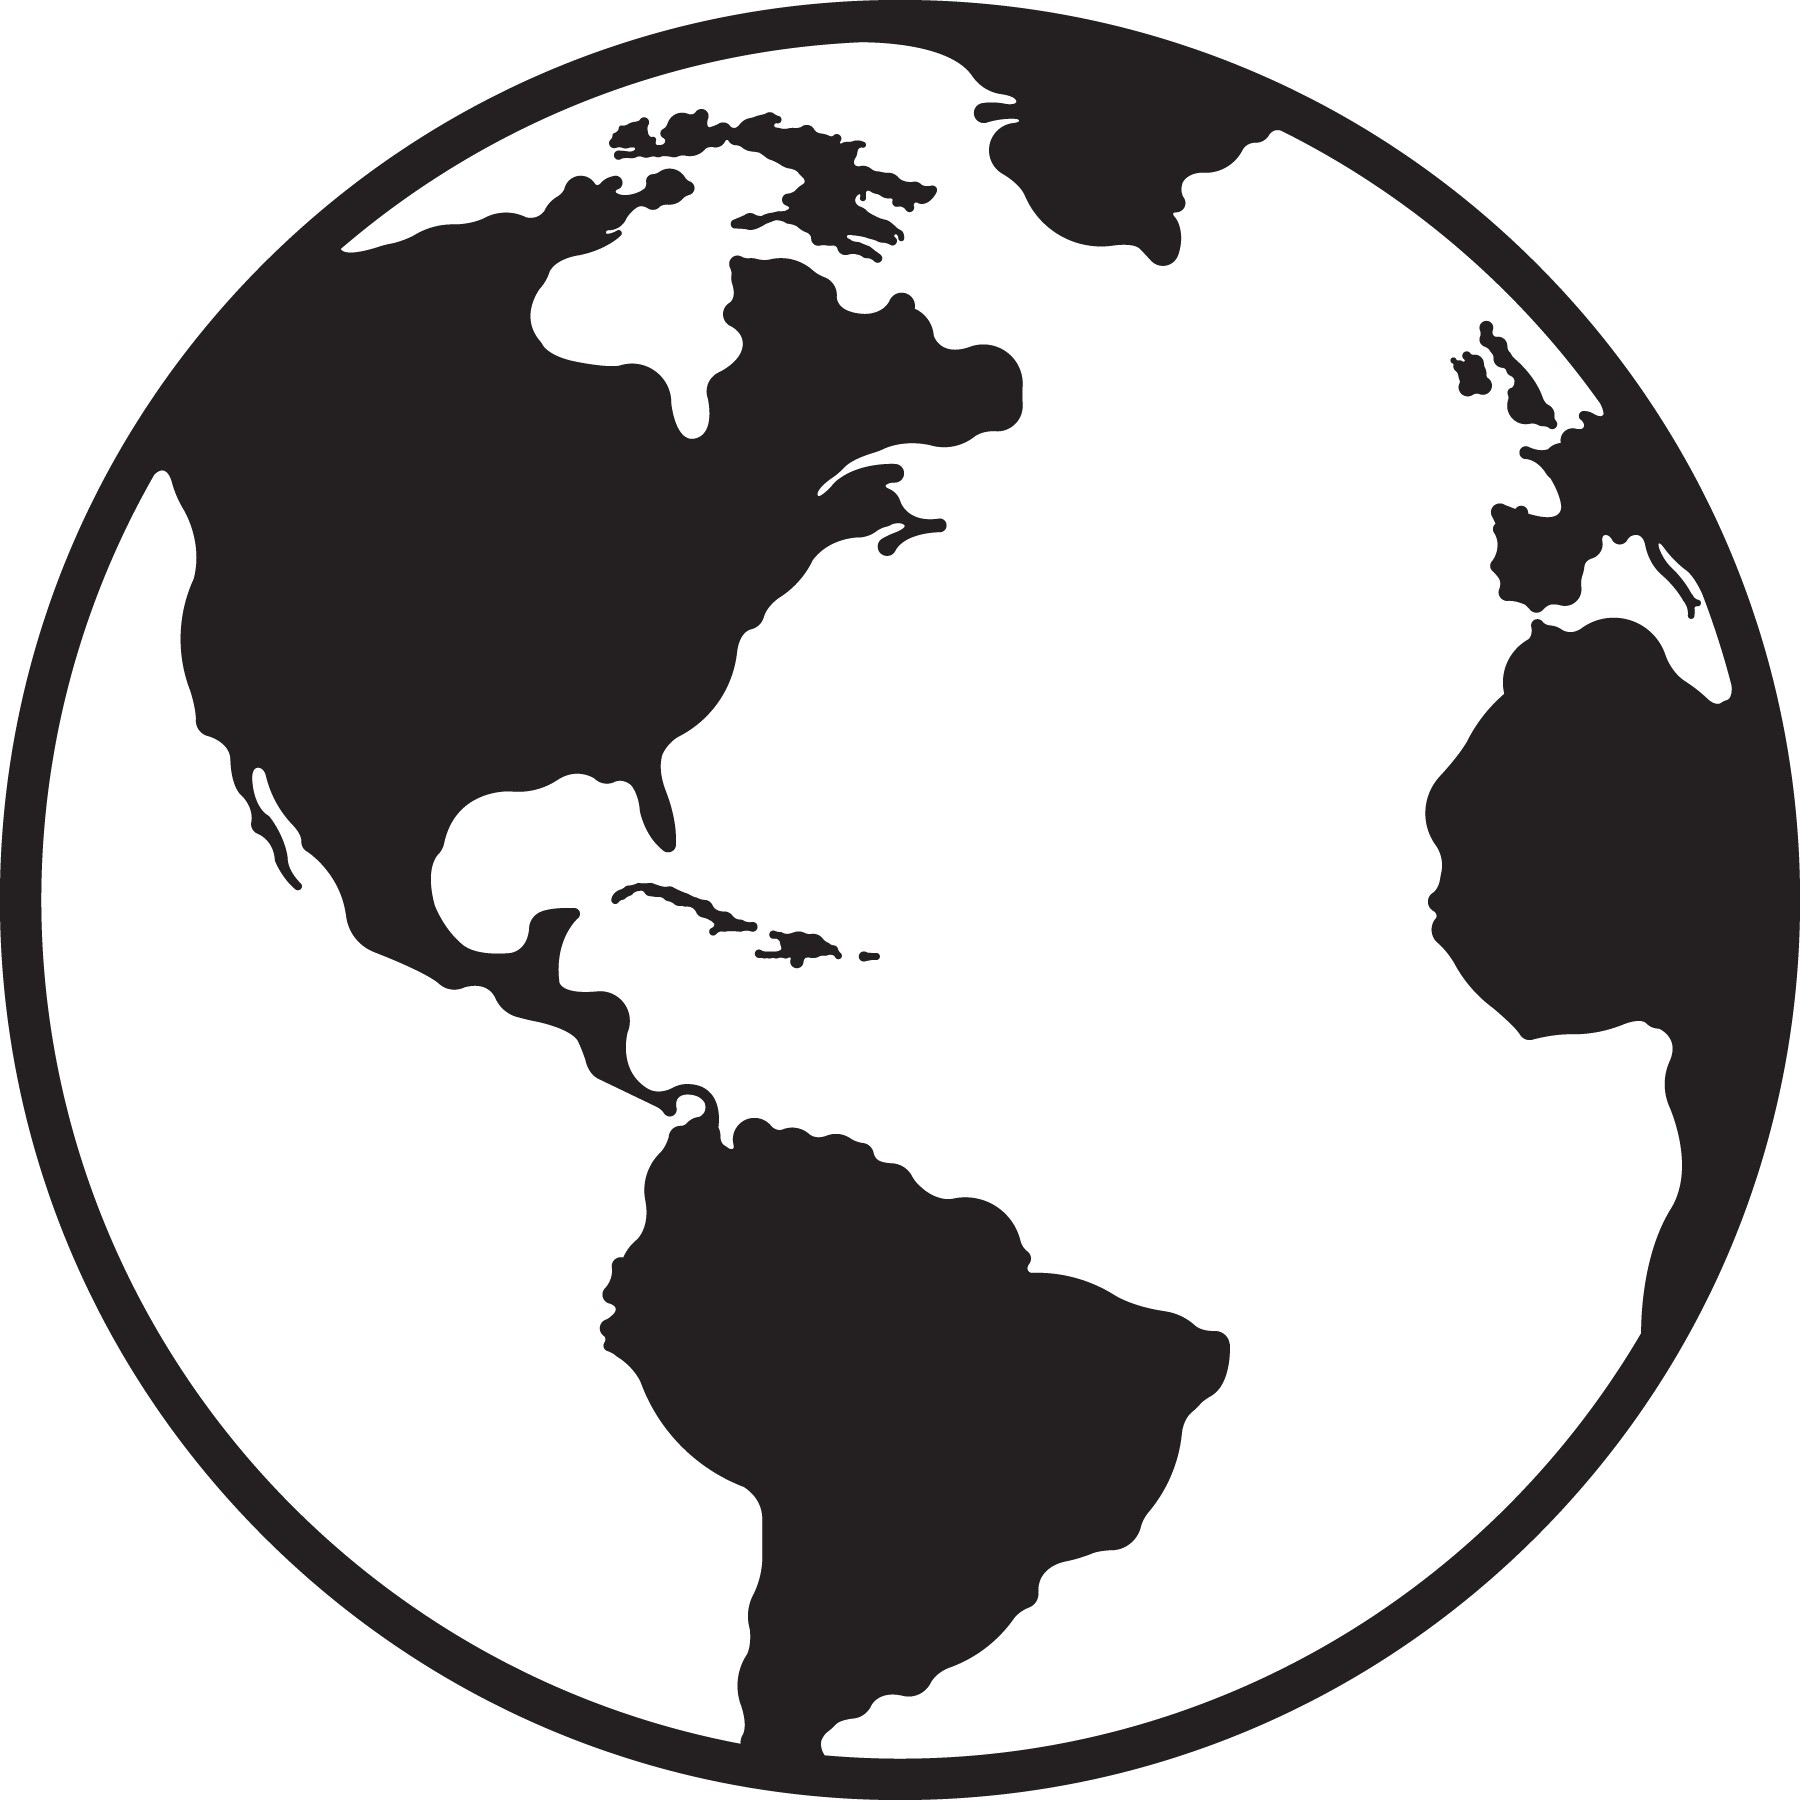 1800x1800 Earth Clipart Black And White 11 G Best Globe Vector Image For